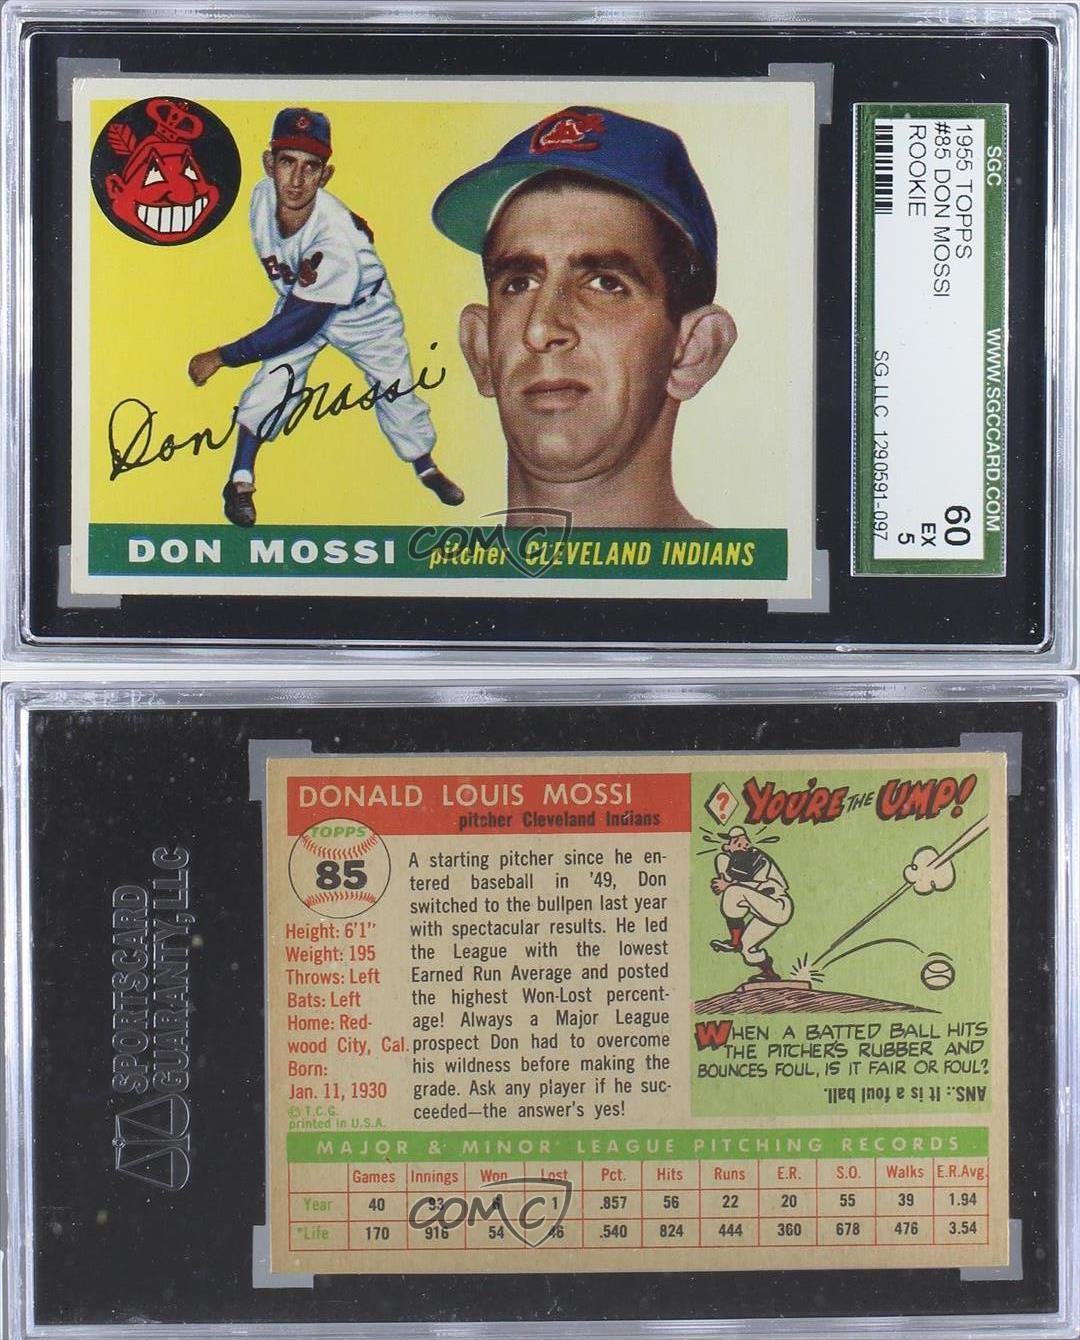 1955 Topps #85 Don Mossi SGC 60 Cleveland Indians RC